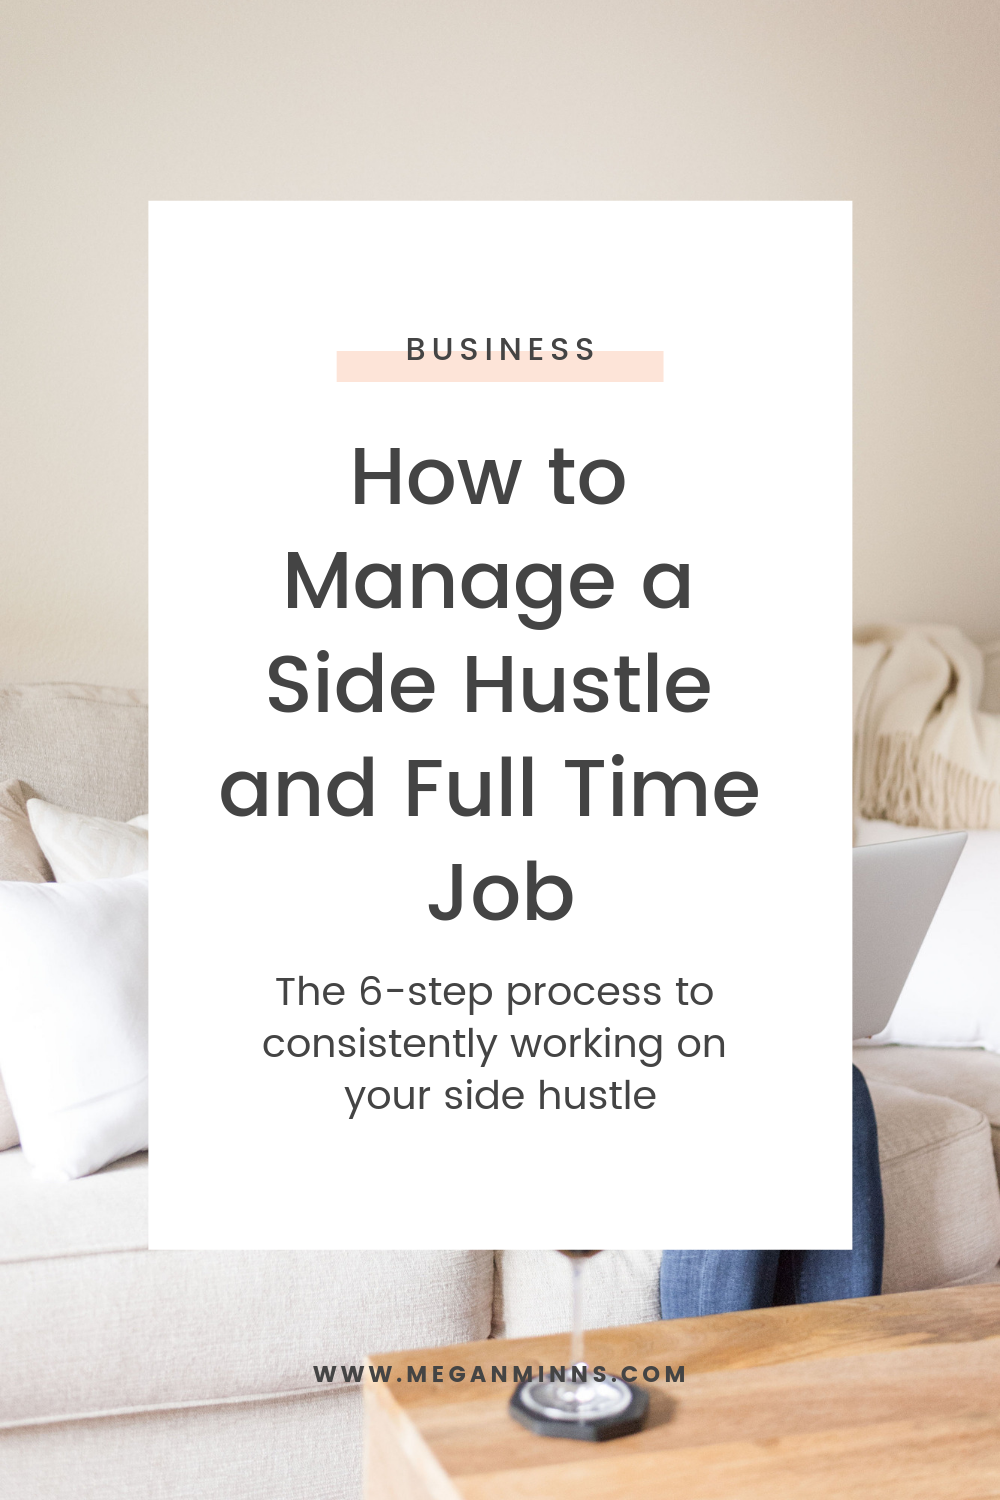 This episode of The Productive Life is not one to miss! You have a side hustle, and you also have a full time job. How do you manage both so they thrive? How can you efficiently manage your time? We're going to cover it all in this episode! LISTEN HERE ▶️ https://meganminns.com/blog/manage-your-side-hustle-and-full-time-job